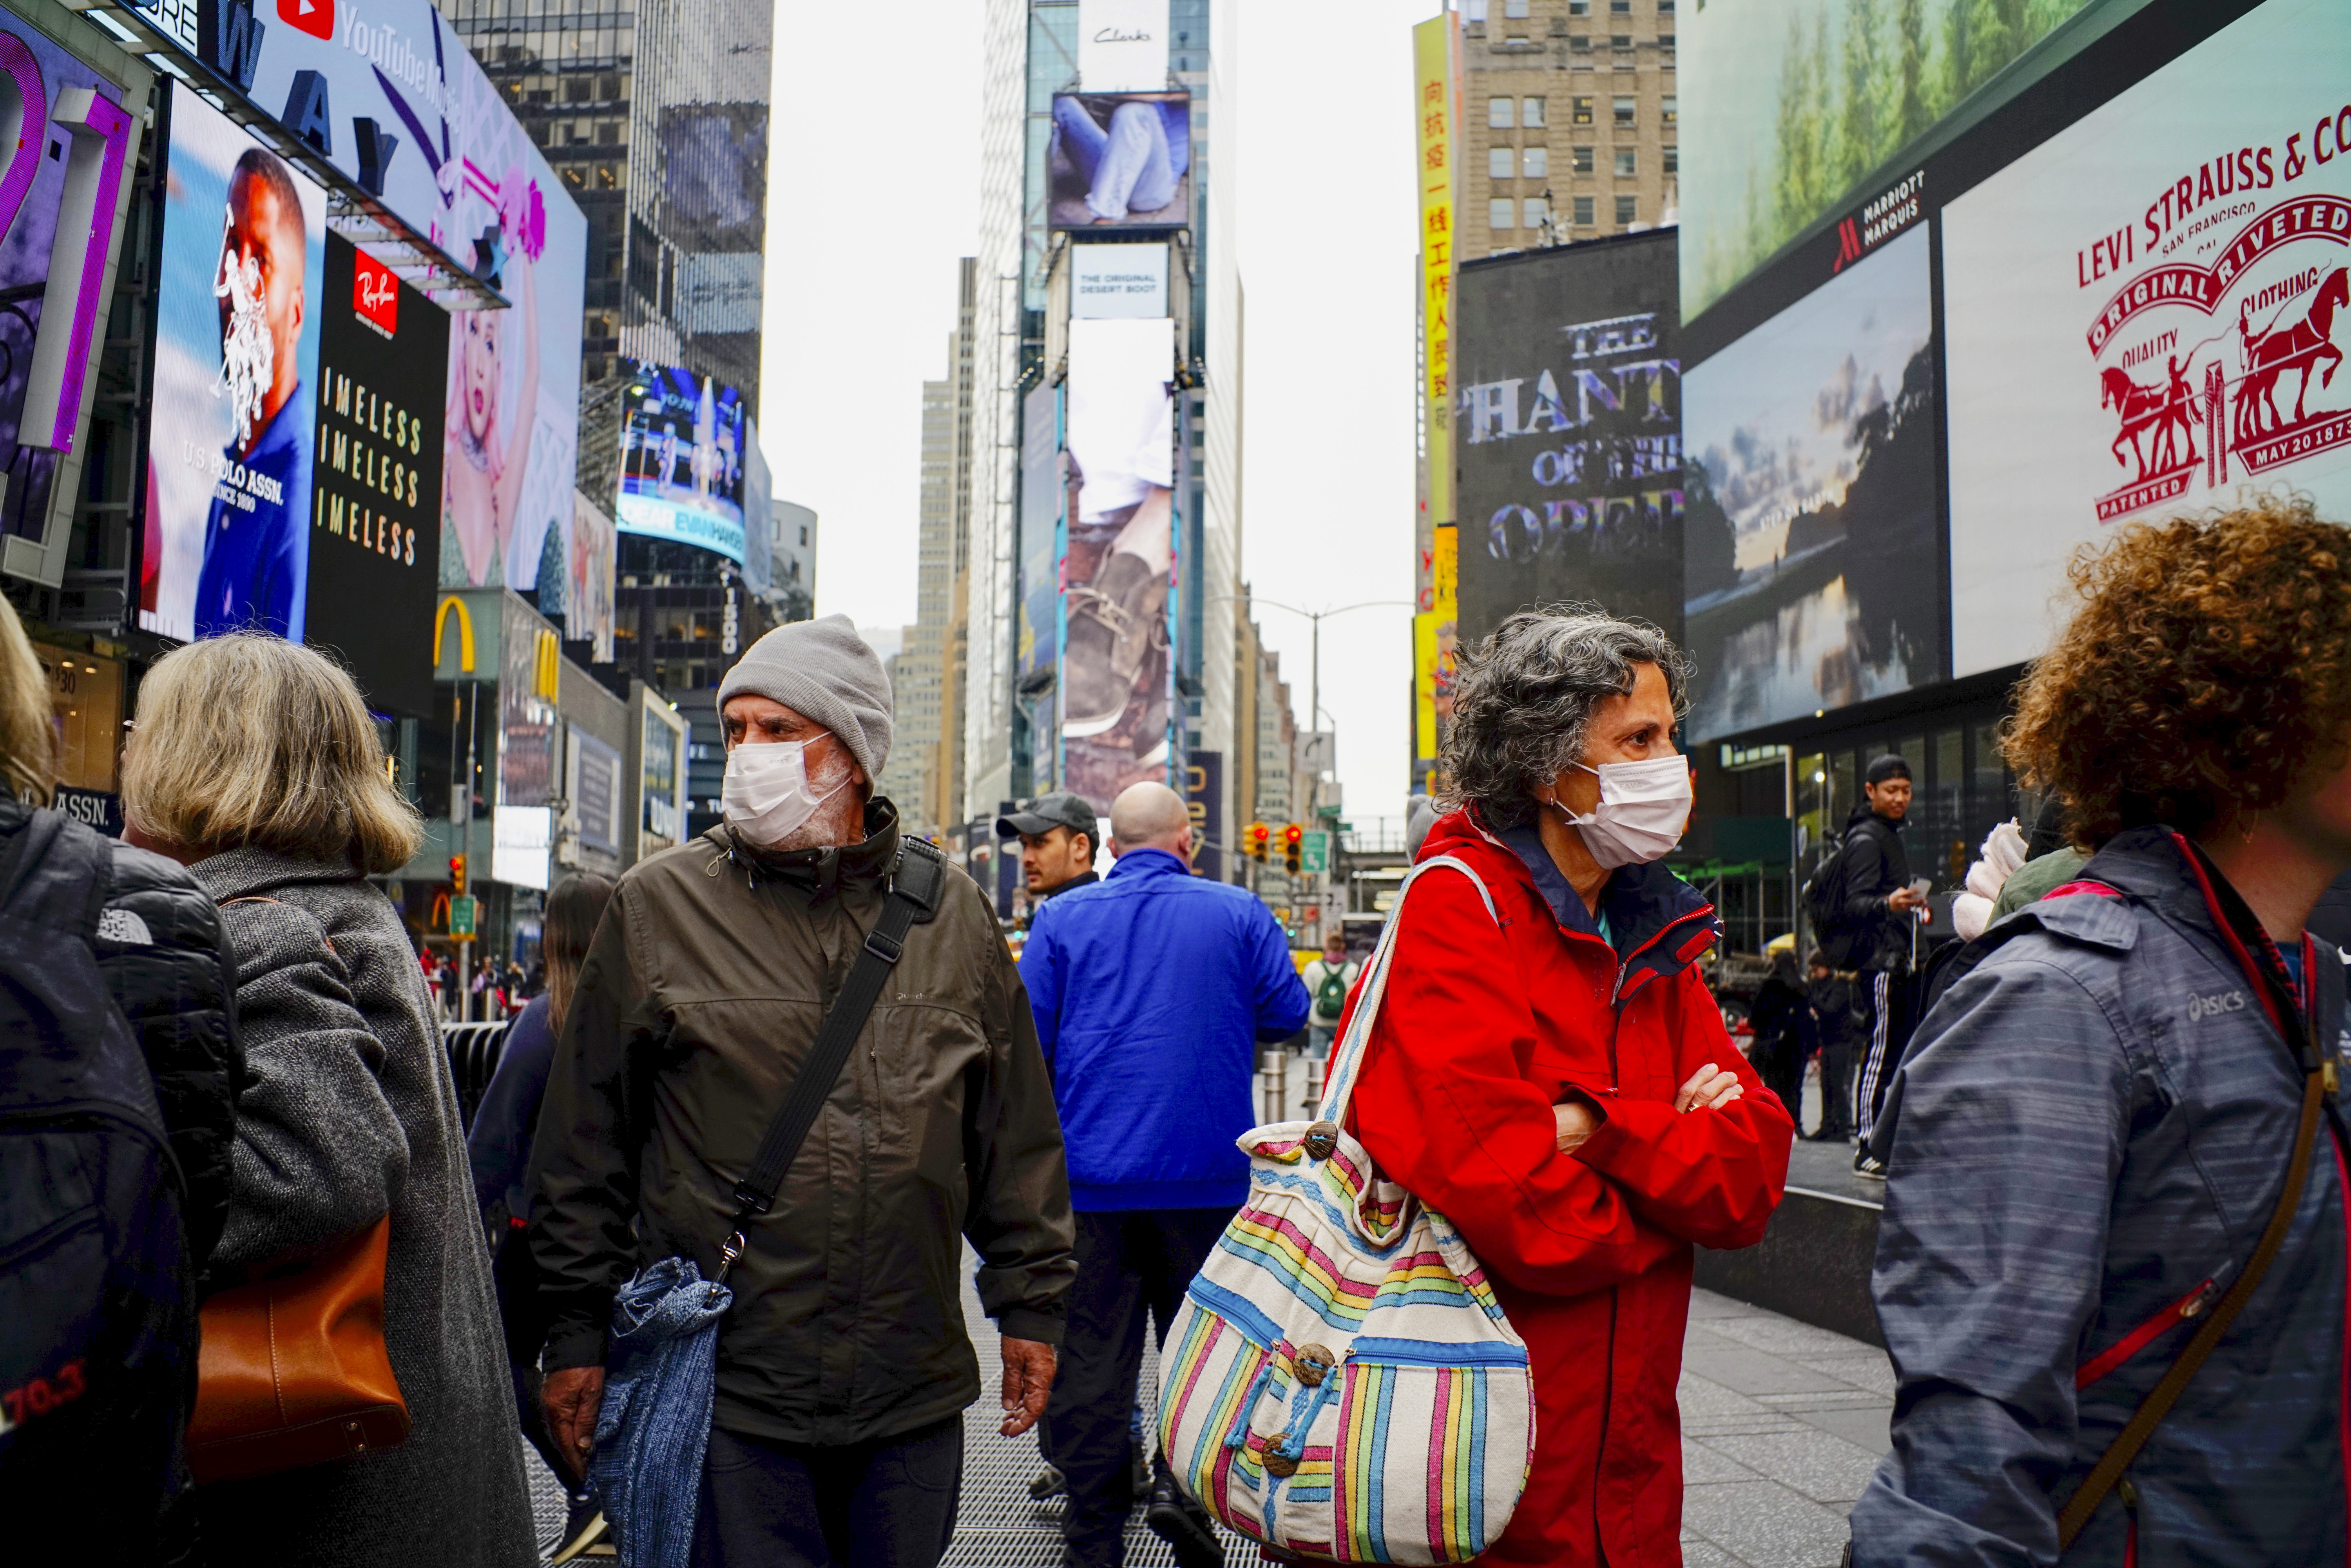 People wear face masks in Times Square New York on March 03, 2020. (Eduardo Munoz / VIEWpress via Getty Images)